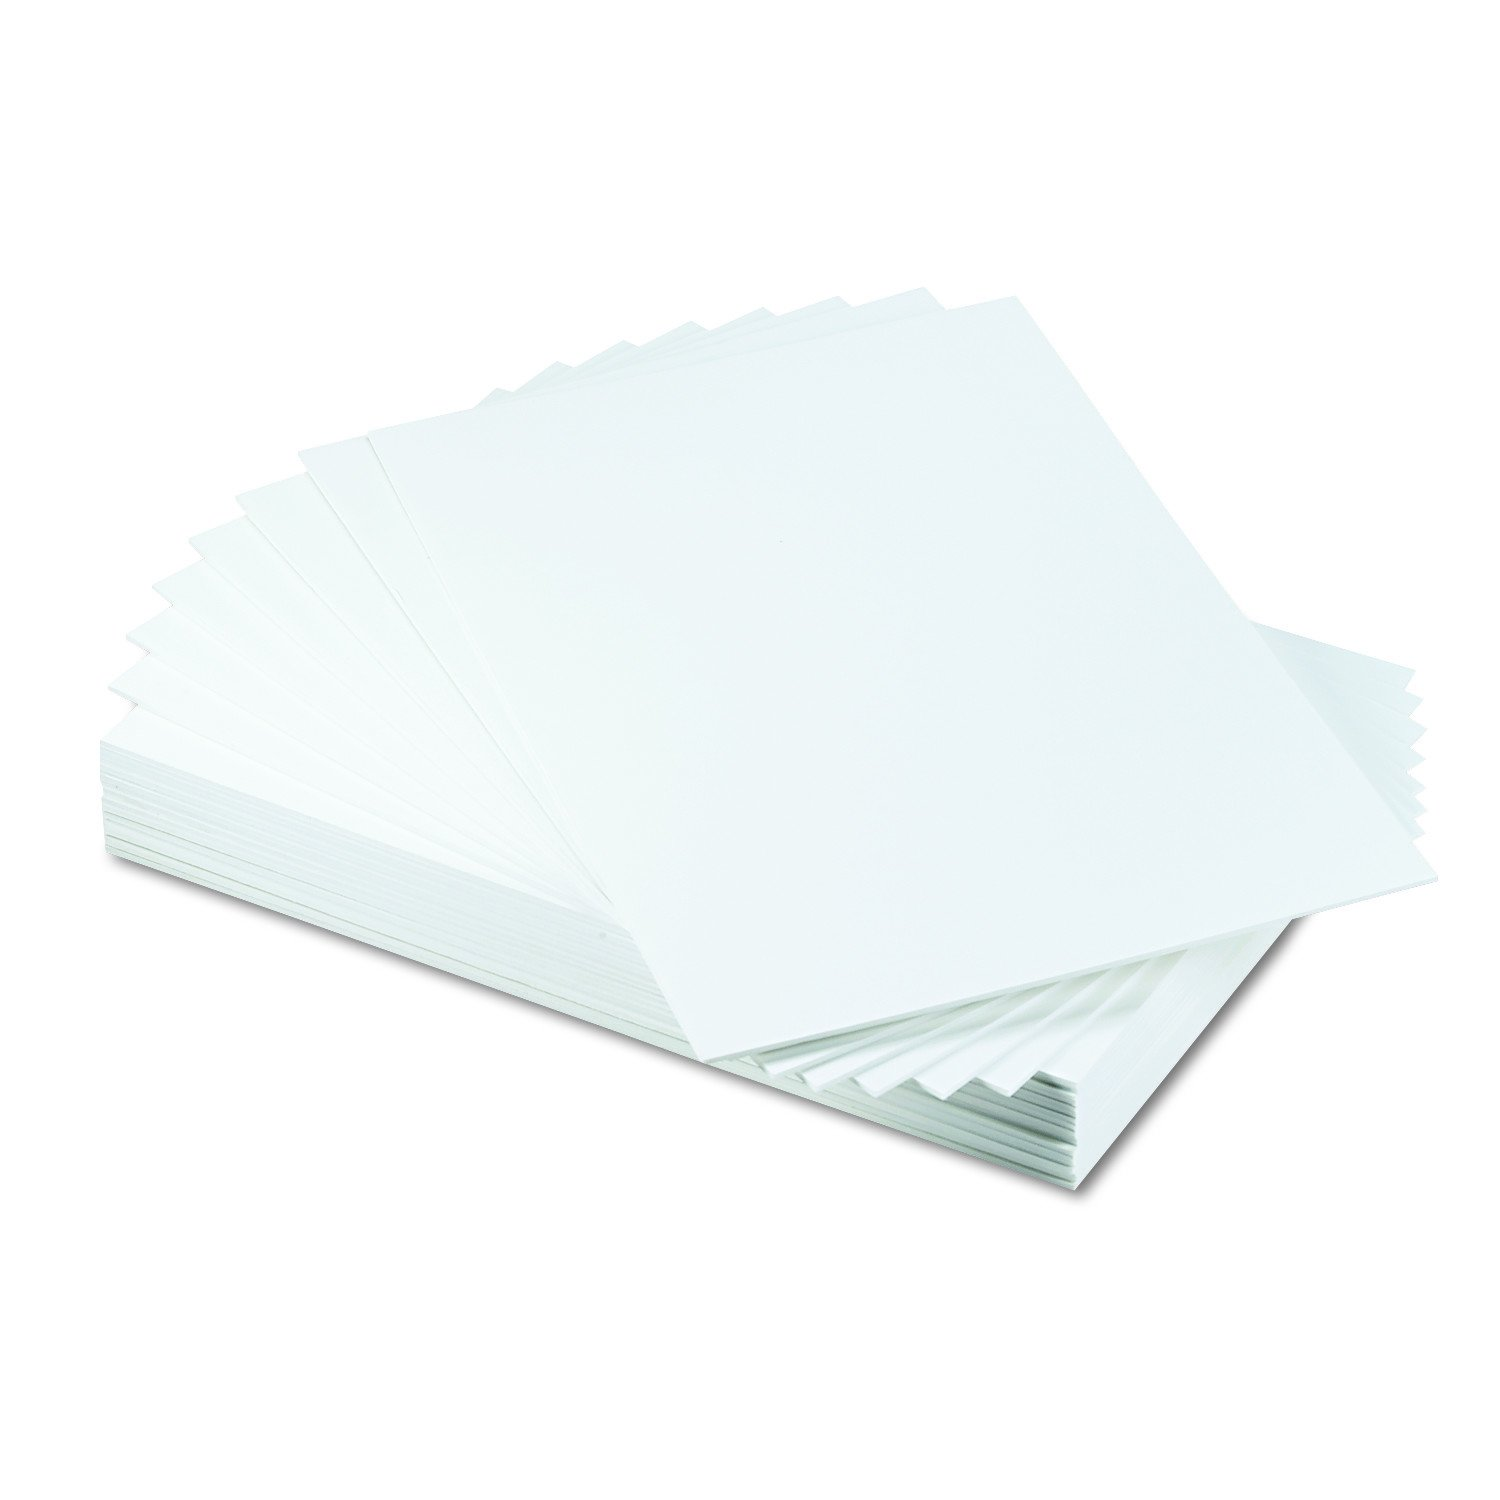 Elmer's 900109 Foam Board, White Surface with White Core, 20 x30, 25 Boards/Carton Elmer' s 900109 Foam Board Elmers